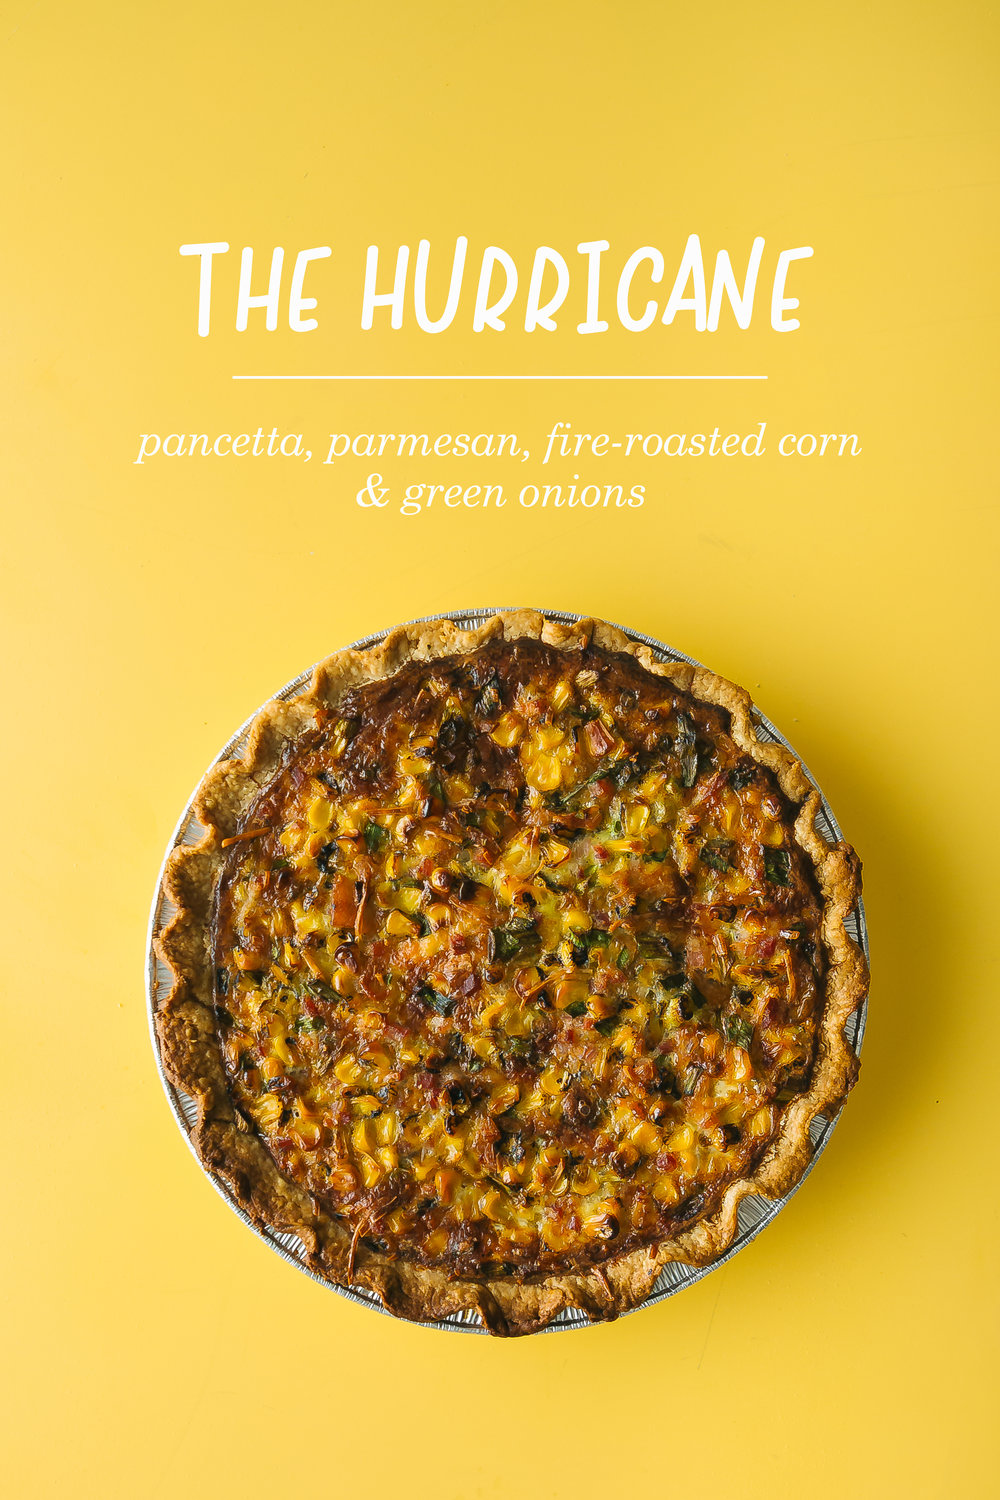 Quiche - Hurricane.jpg